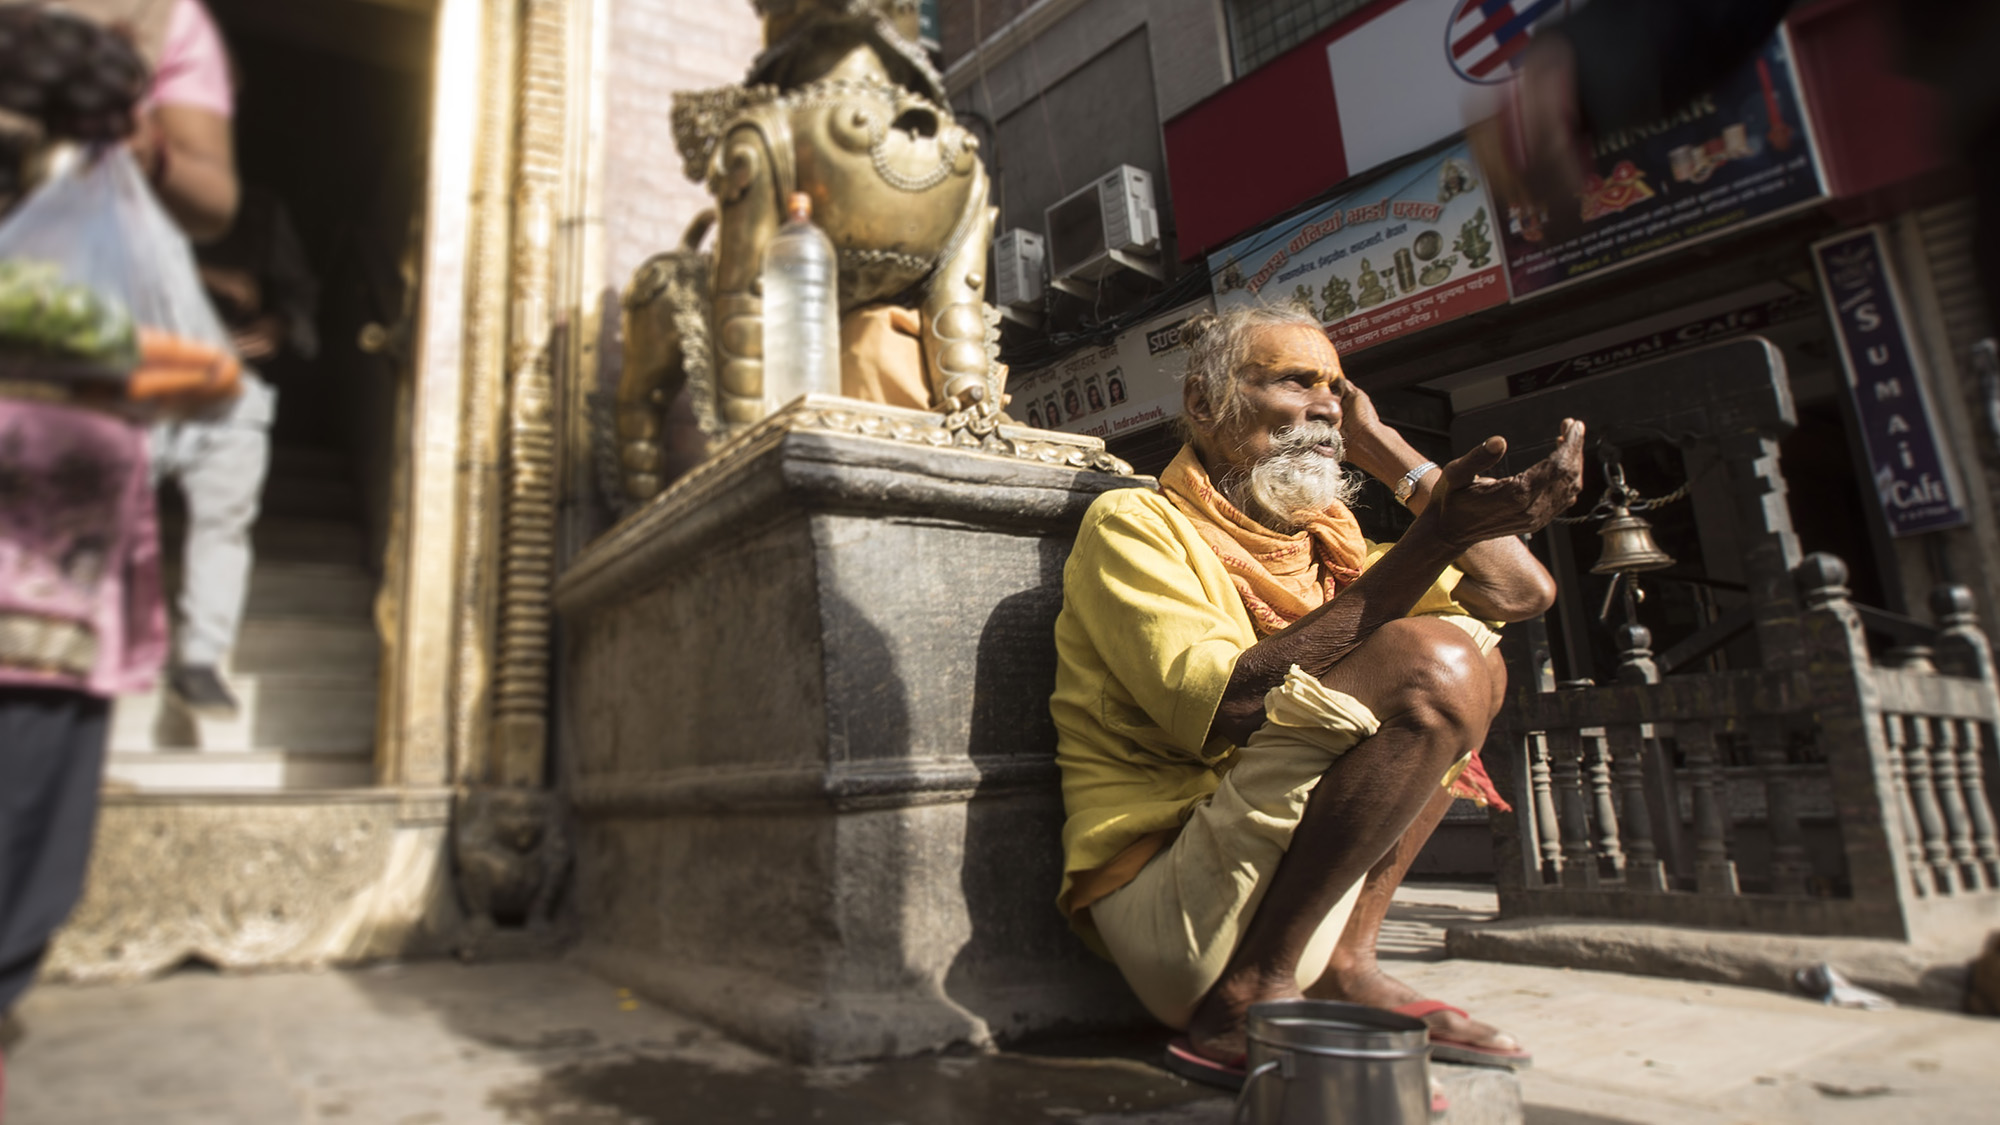 A holy man waits outside a temple for spare change.